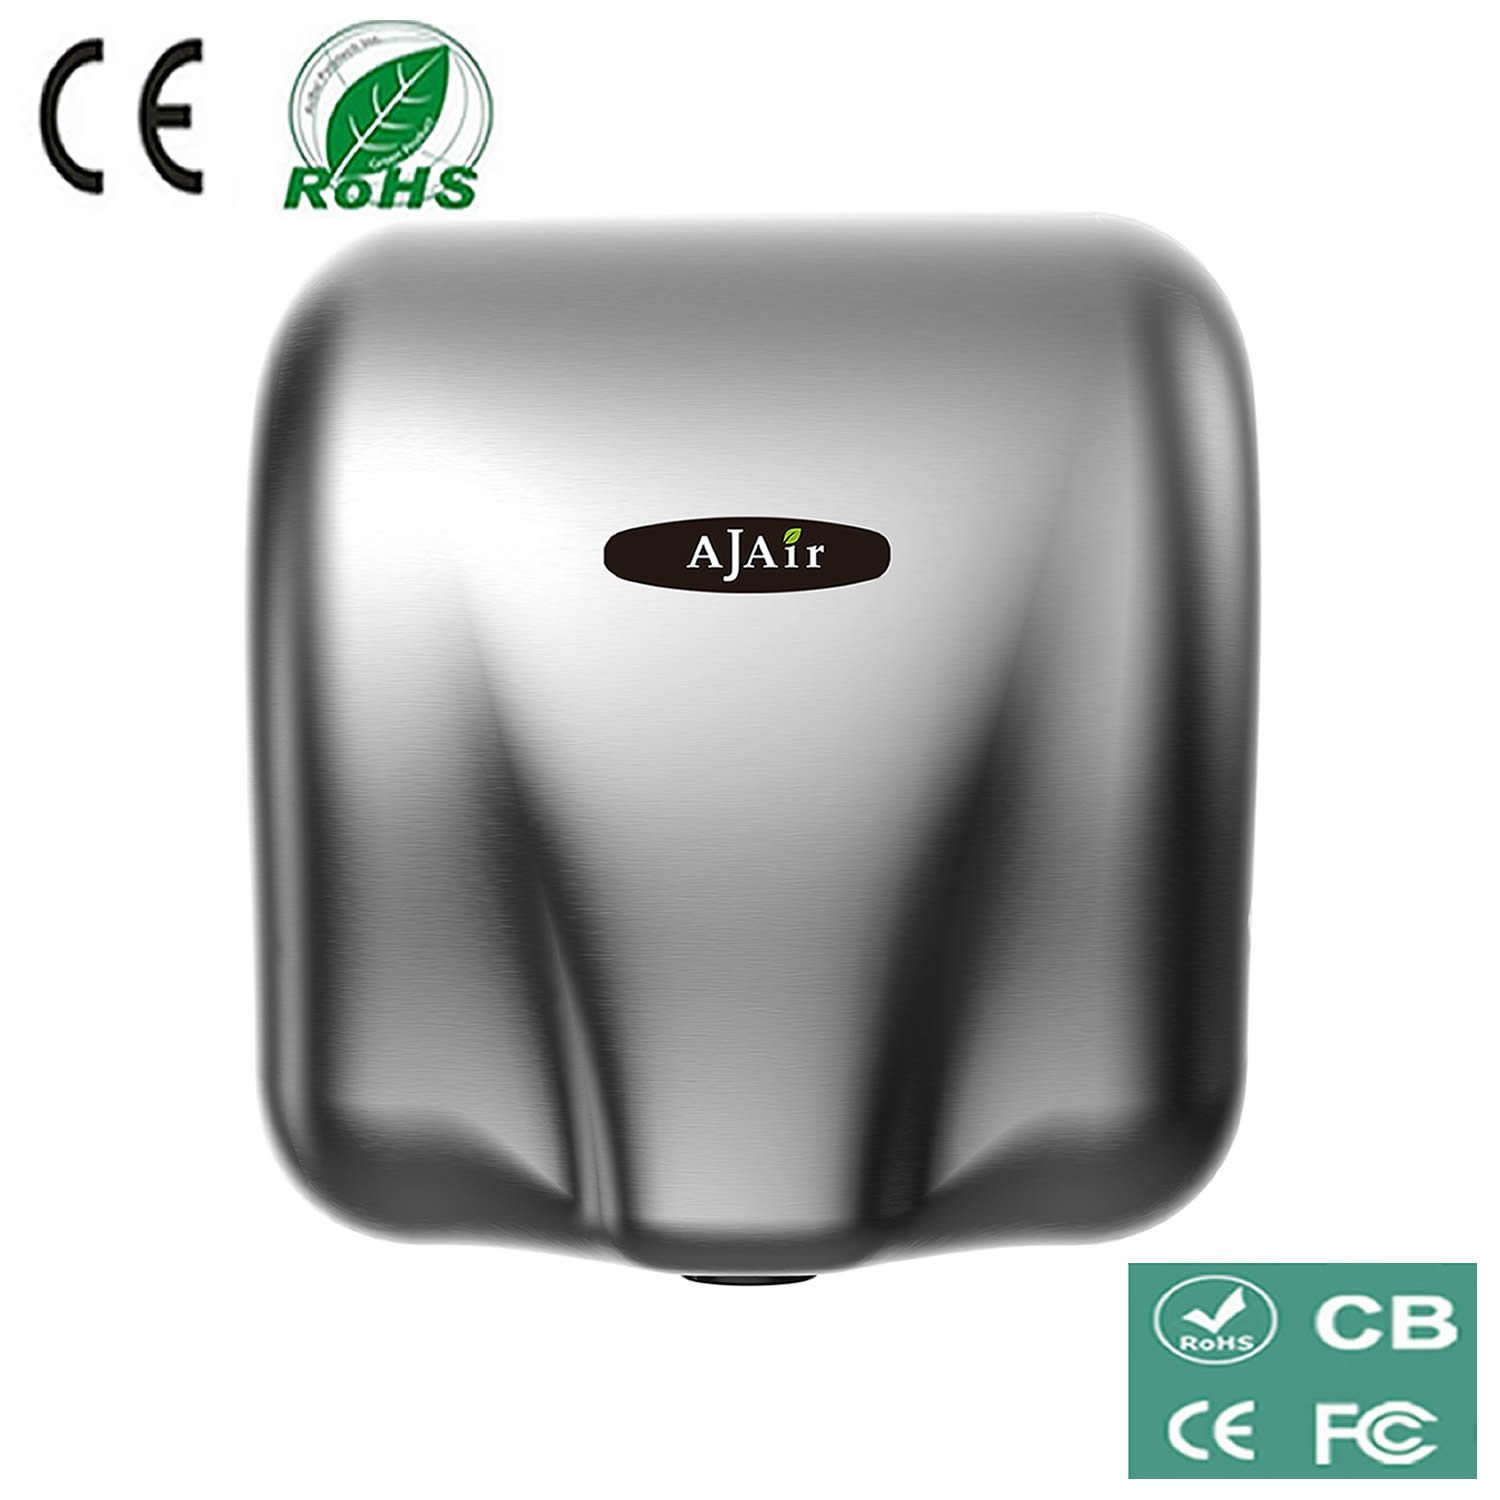 AjAir® Heavy Duty Commercial 1800 Watts High Speed Automatic Hot Hand Dryer - Stainless Steel by AjAir